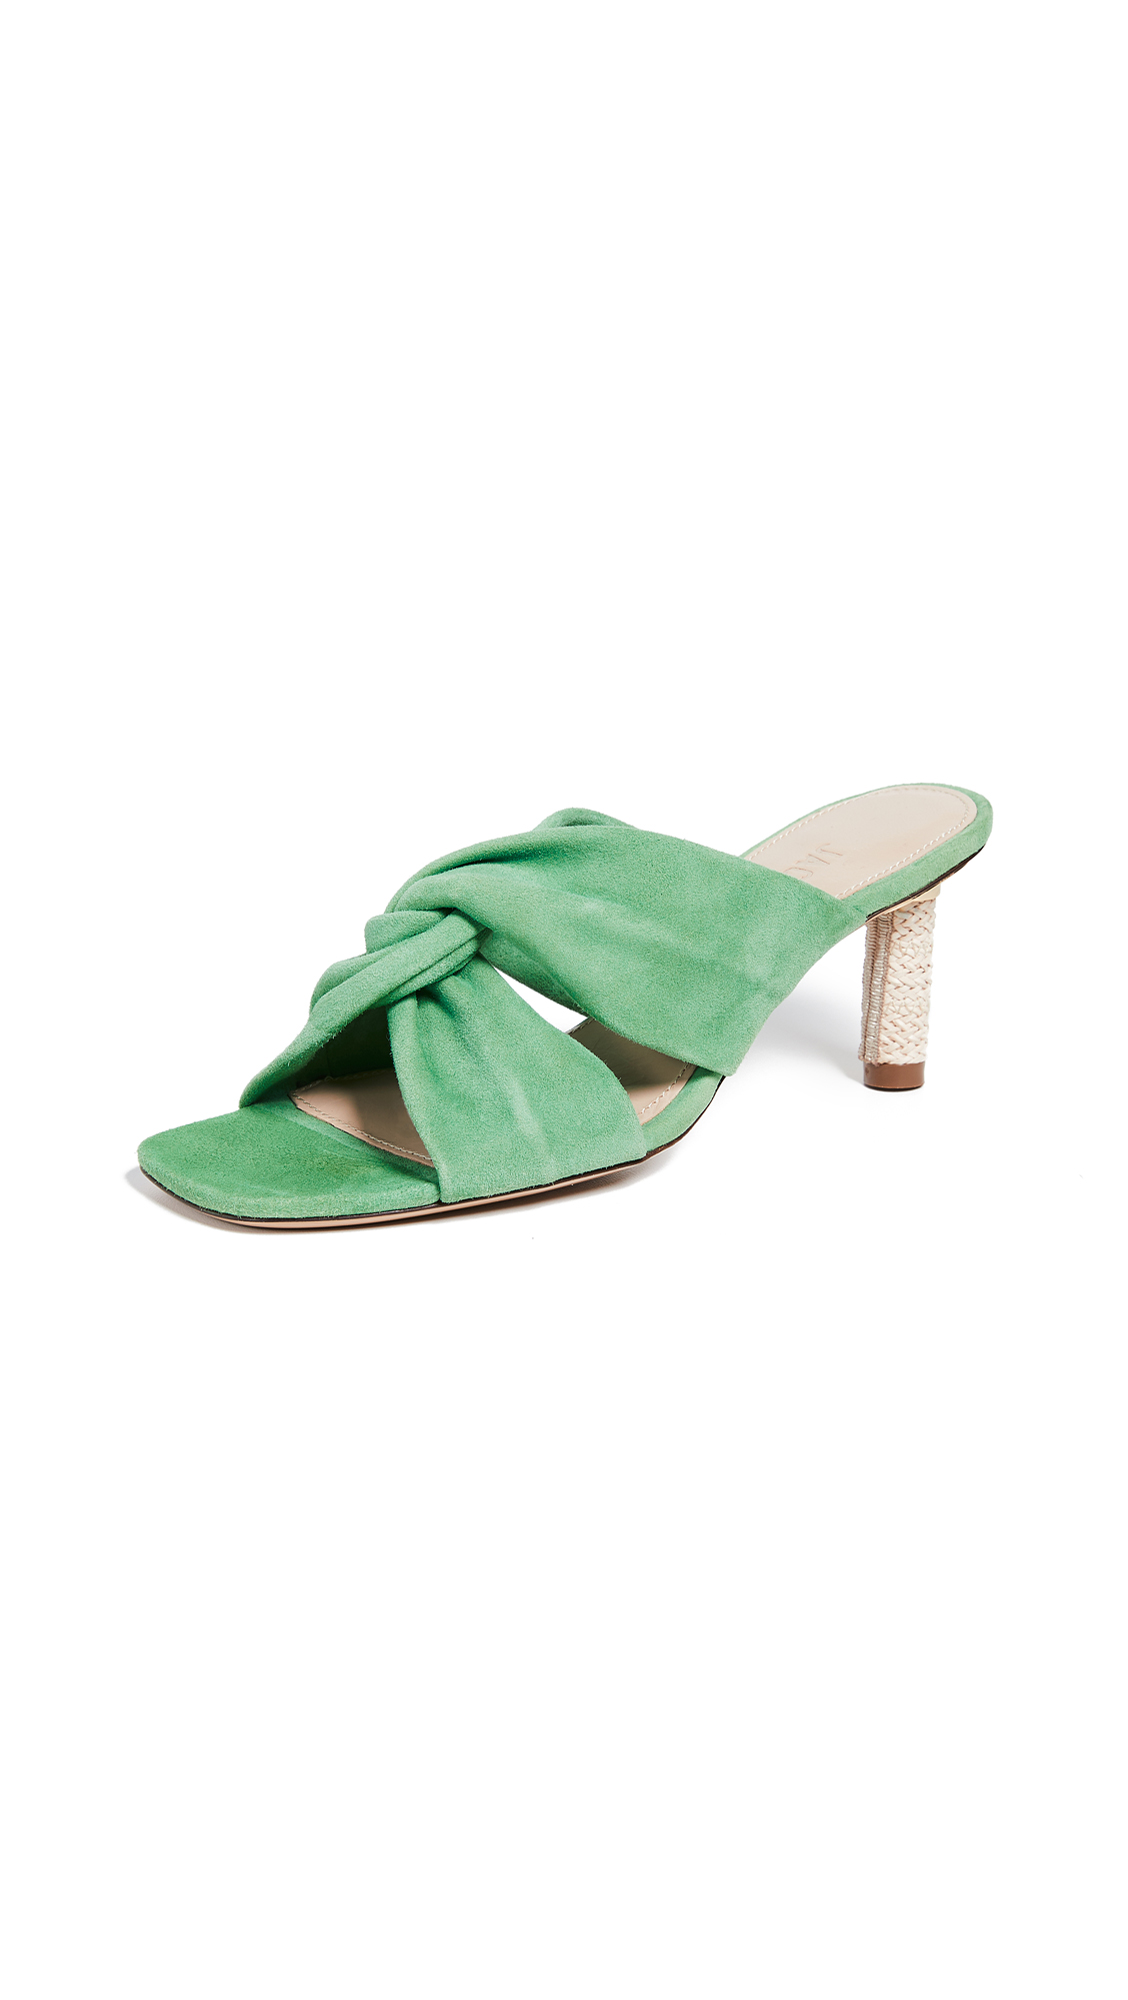 Jacquemus Les Mules Bellagio - Green